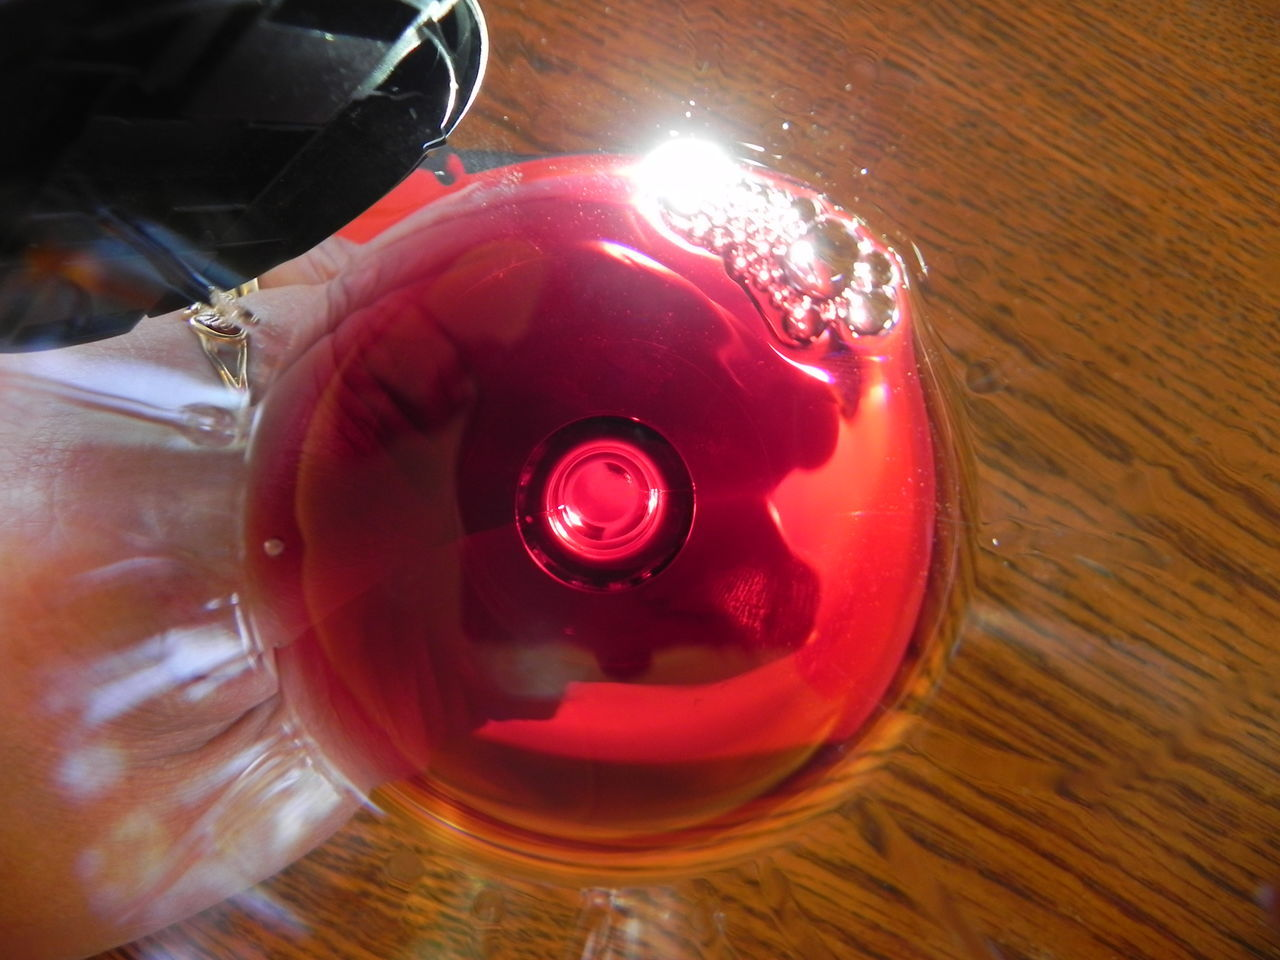 wine tasting with friends from another land Alcohol Close-up Day Indoors  No People Red Red Wine In The Glas Red Wine♡ Reflection Sun Glare Wine Wine Glass Wine Moments Wine Tasting Wine Moments